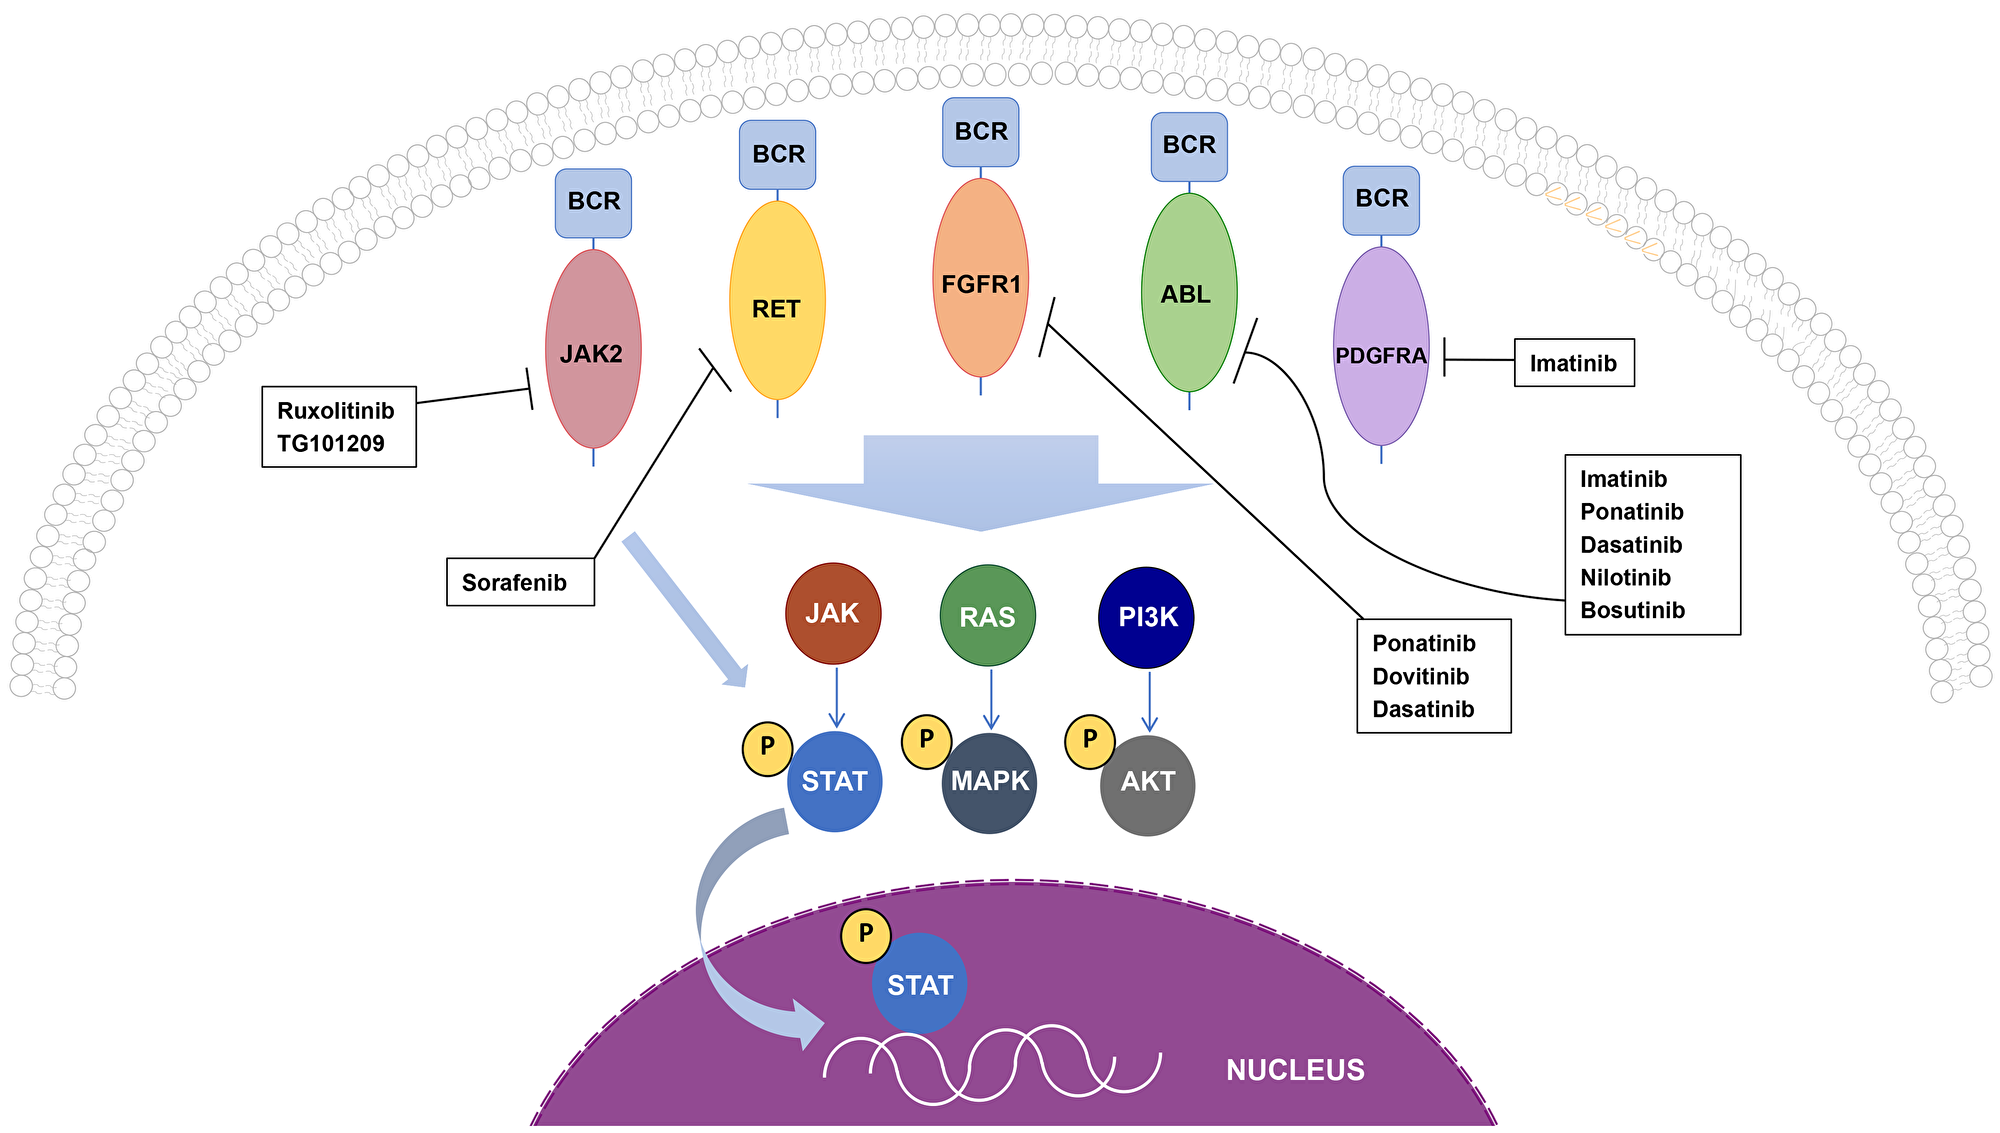 Oncogenic BCR fusion proteins and cellular signaling cascades.